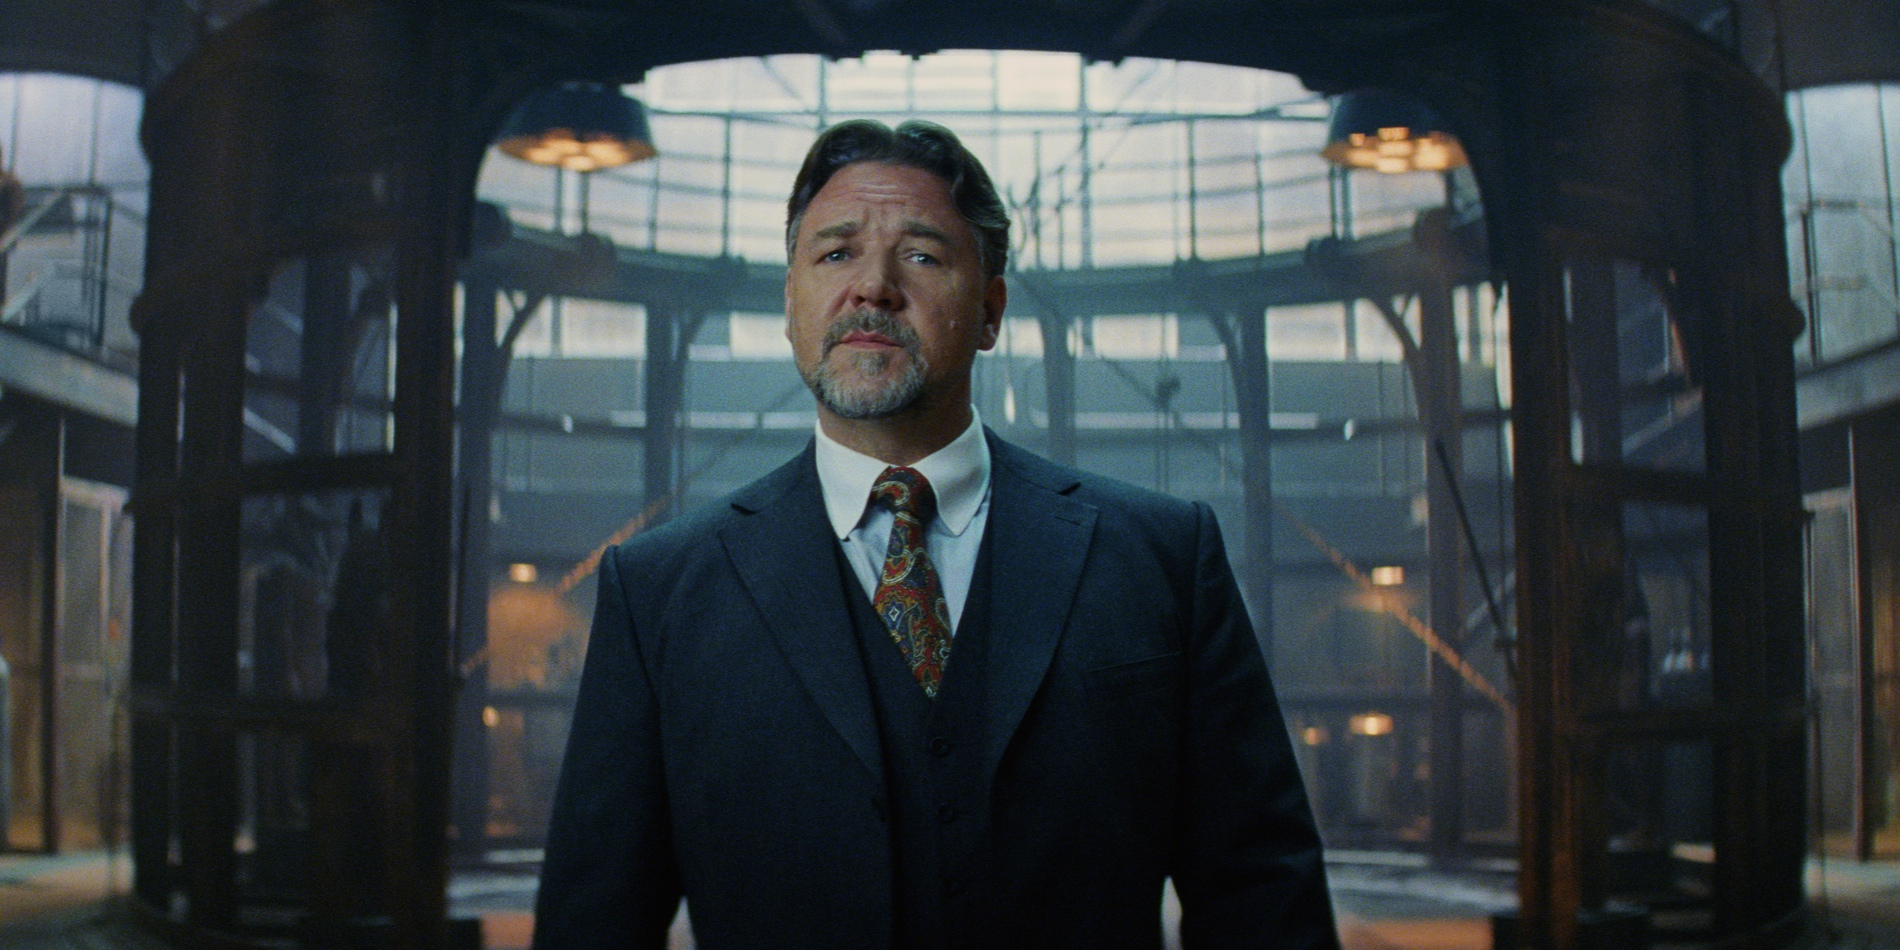 Russell Crowe in The Mummy.